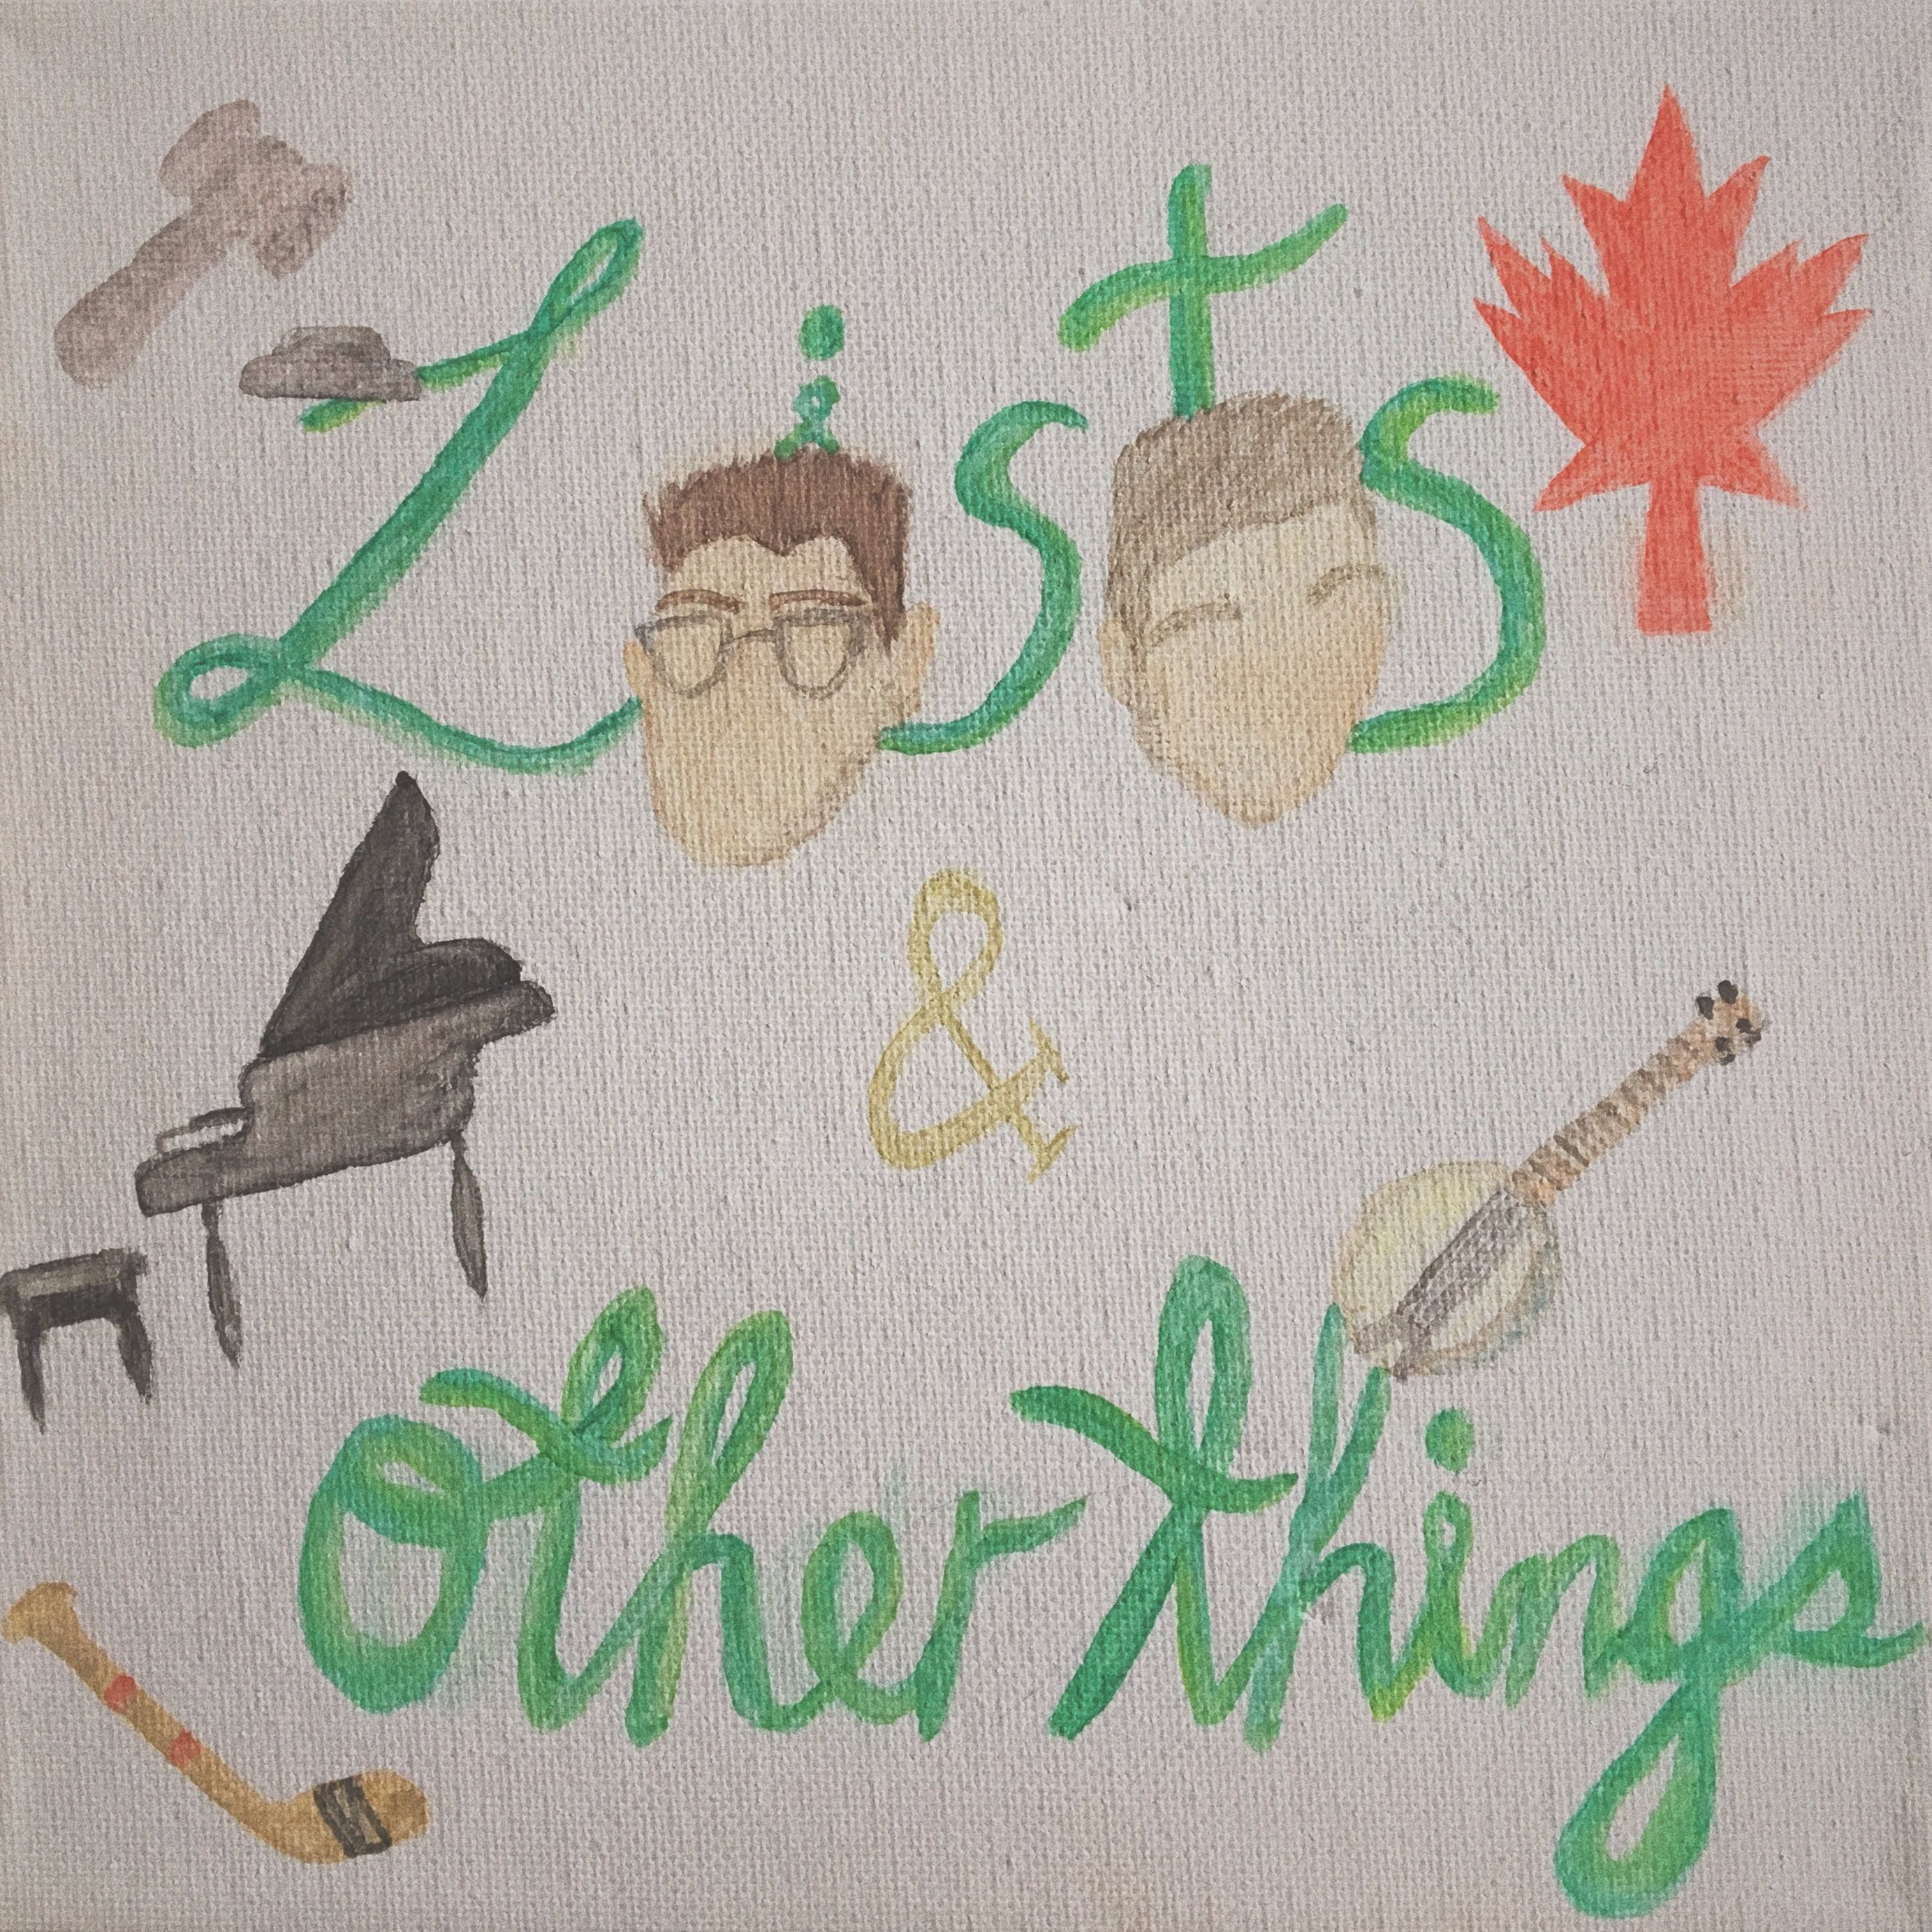 Lists & Other Things Ep. 8 - Foodstuffs